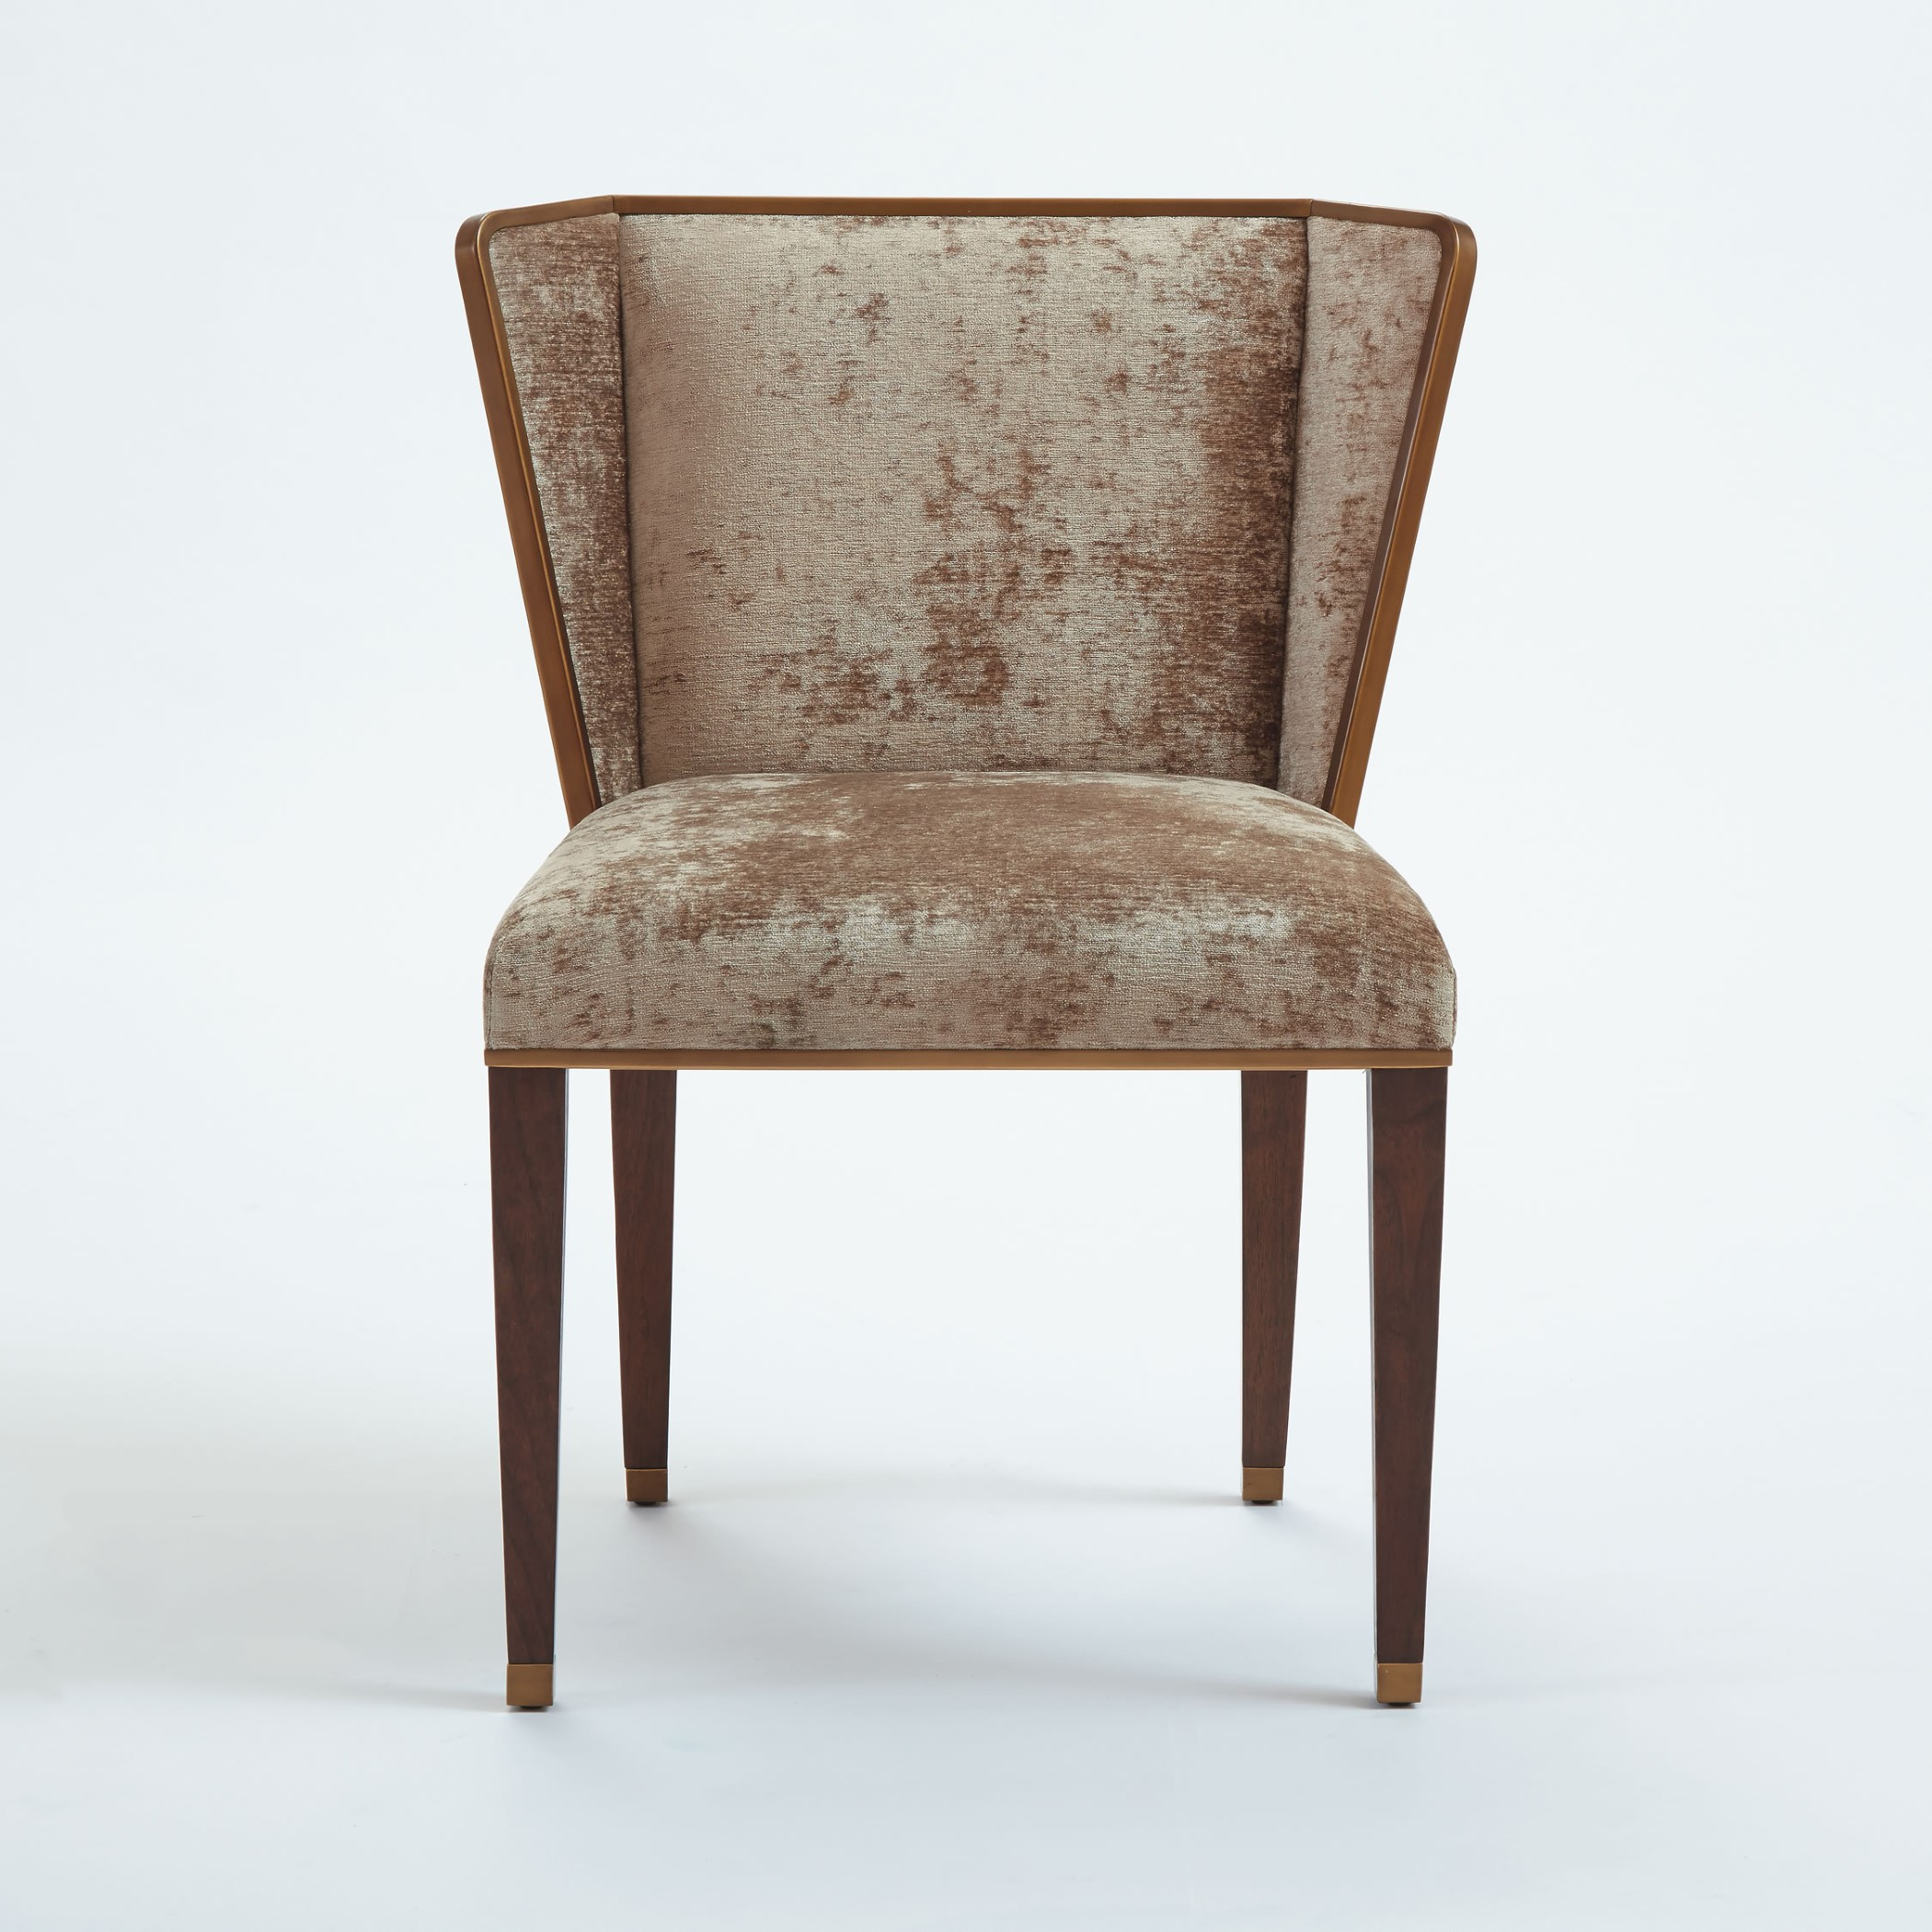 Global-Views-D'Oro-chair